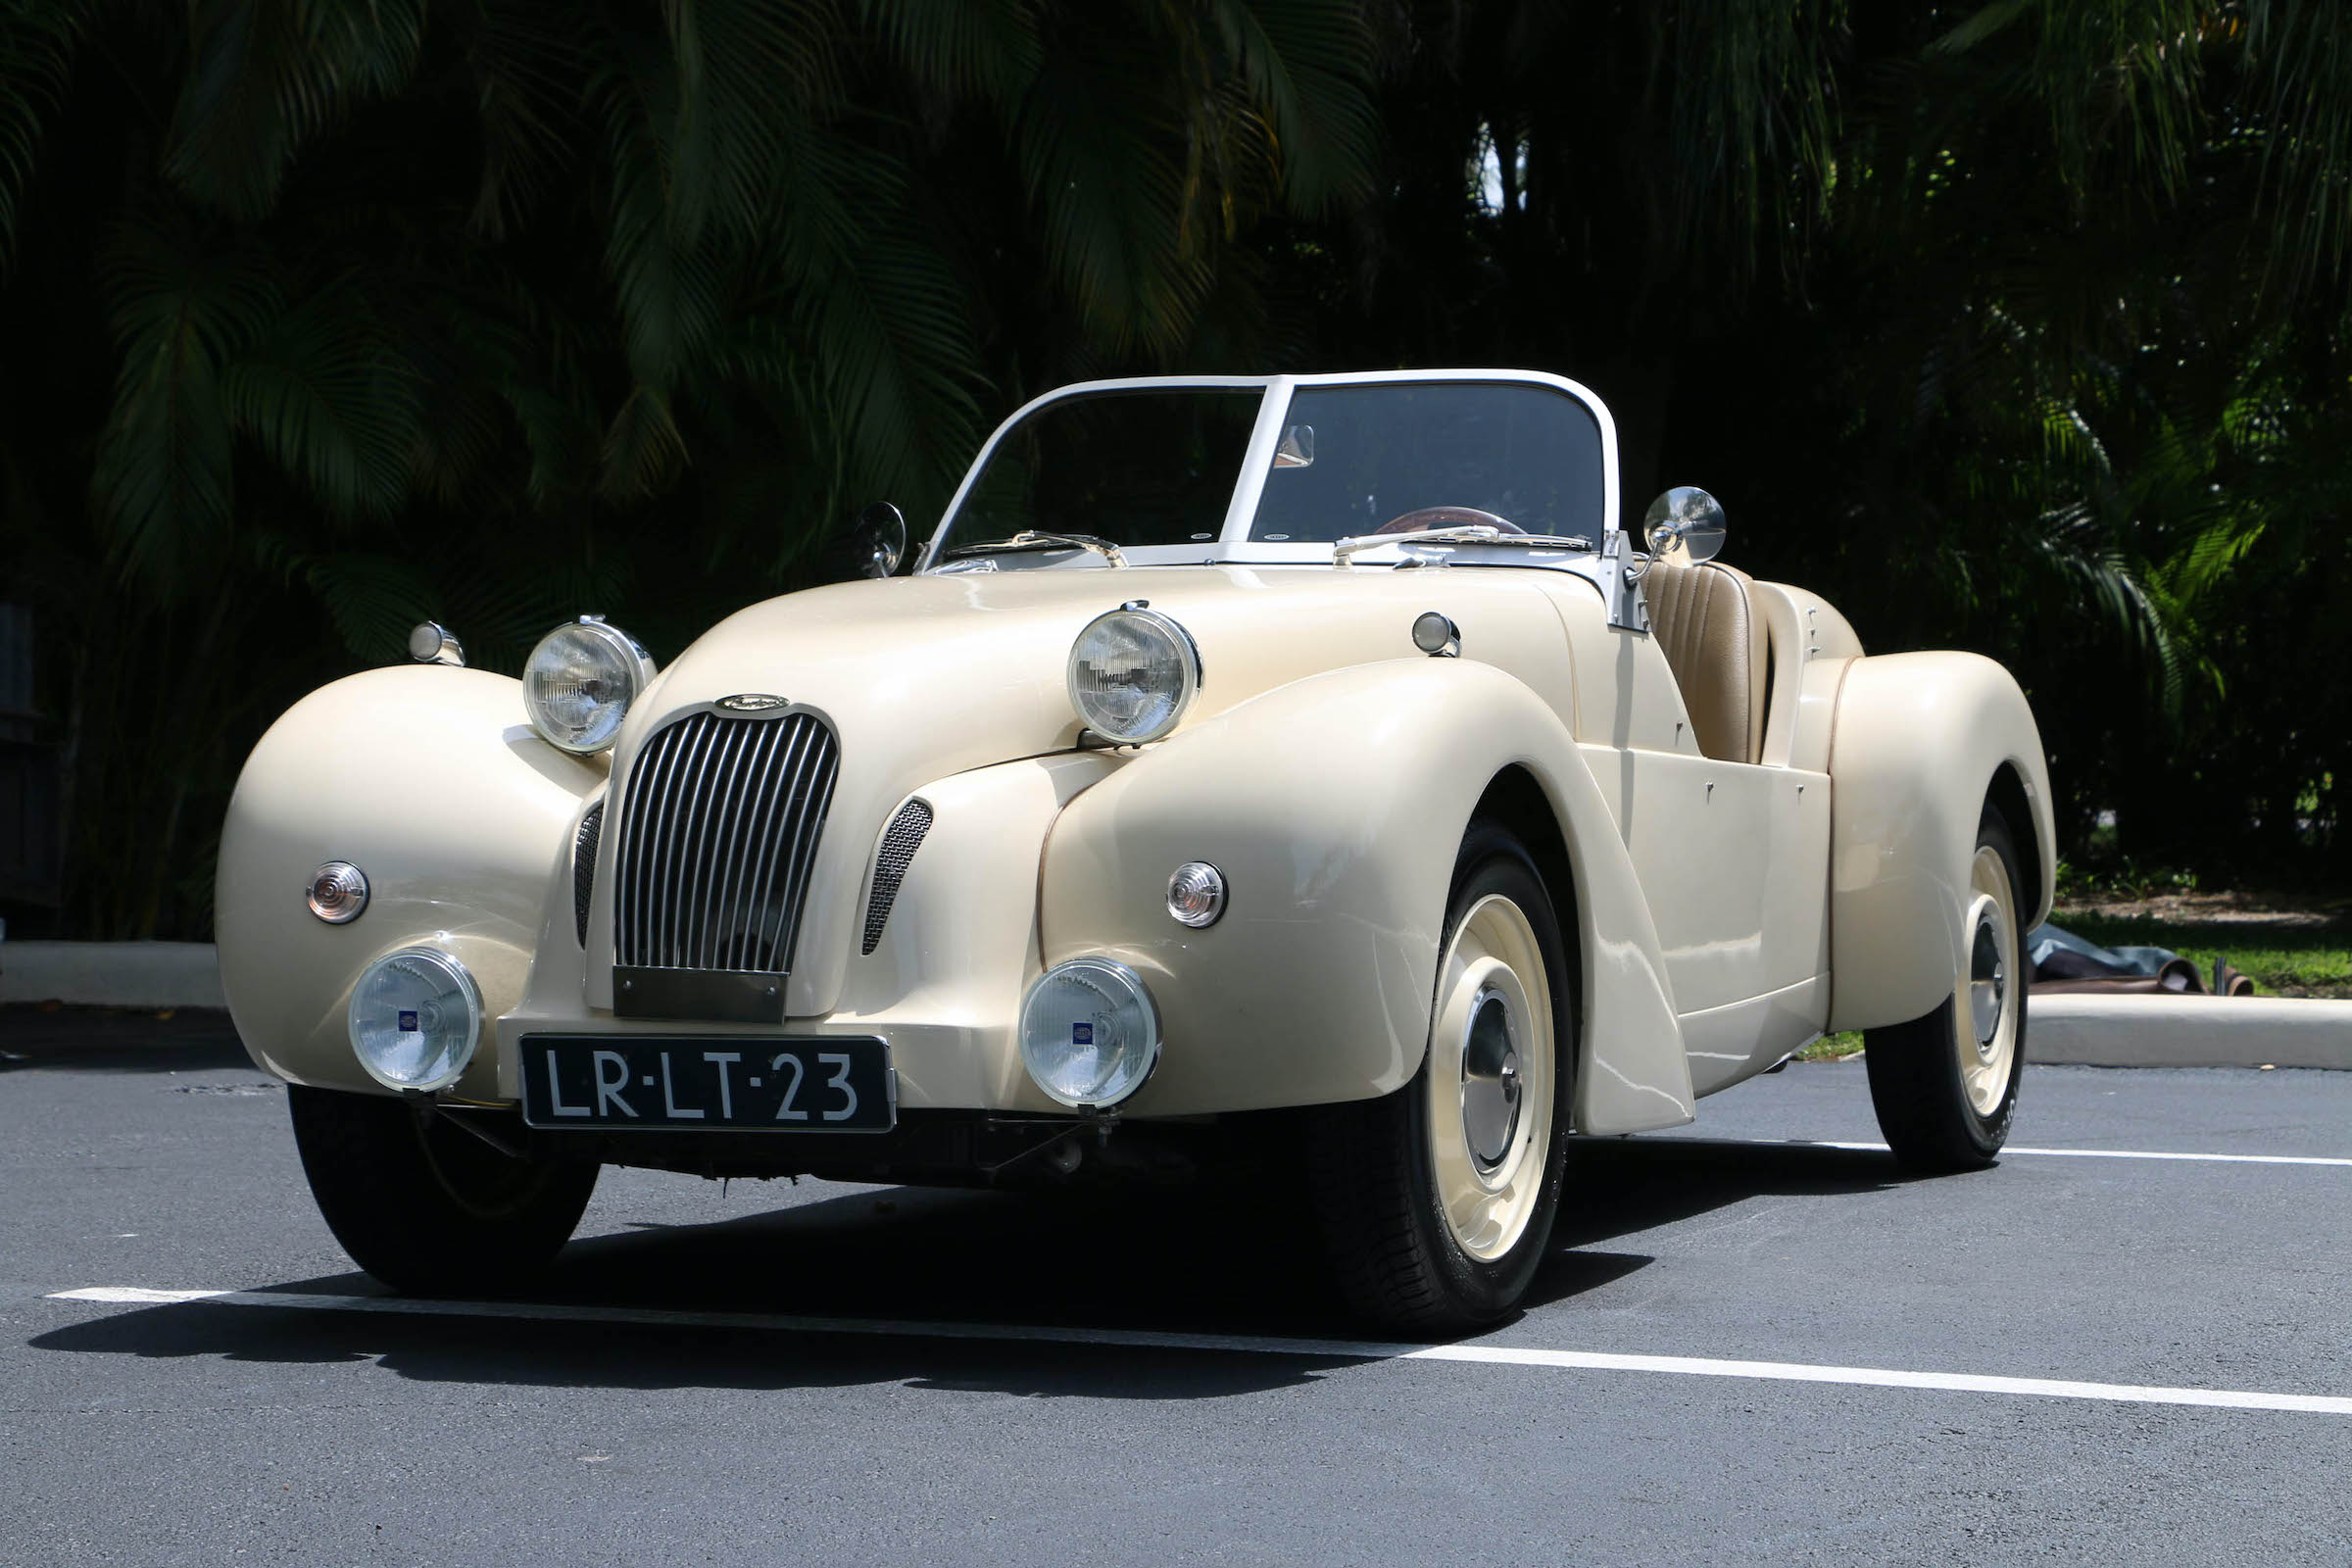 Turn more heads than a supercar with this rare Citroën 2CV Roadster